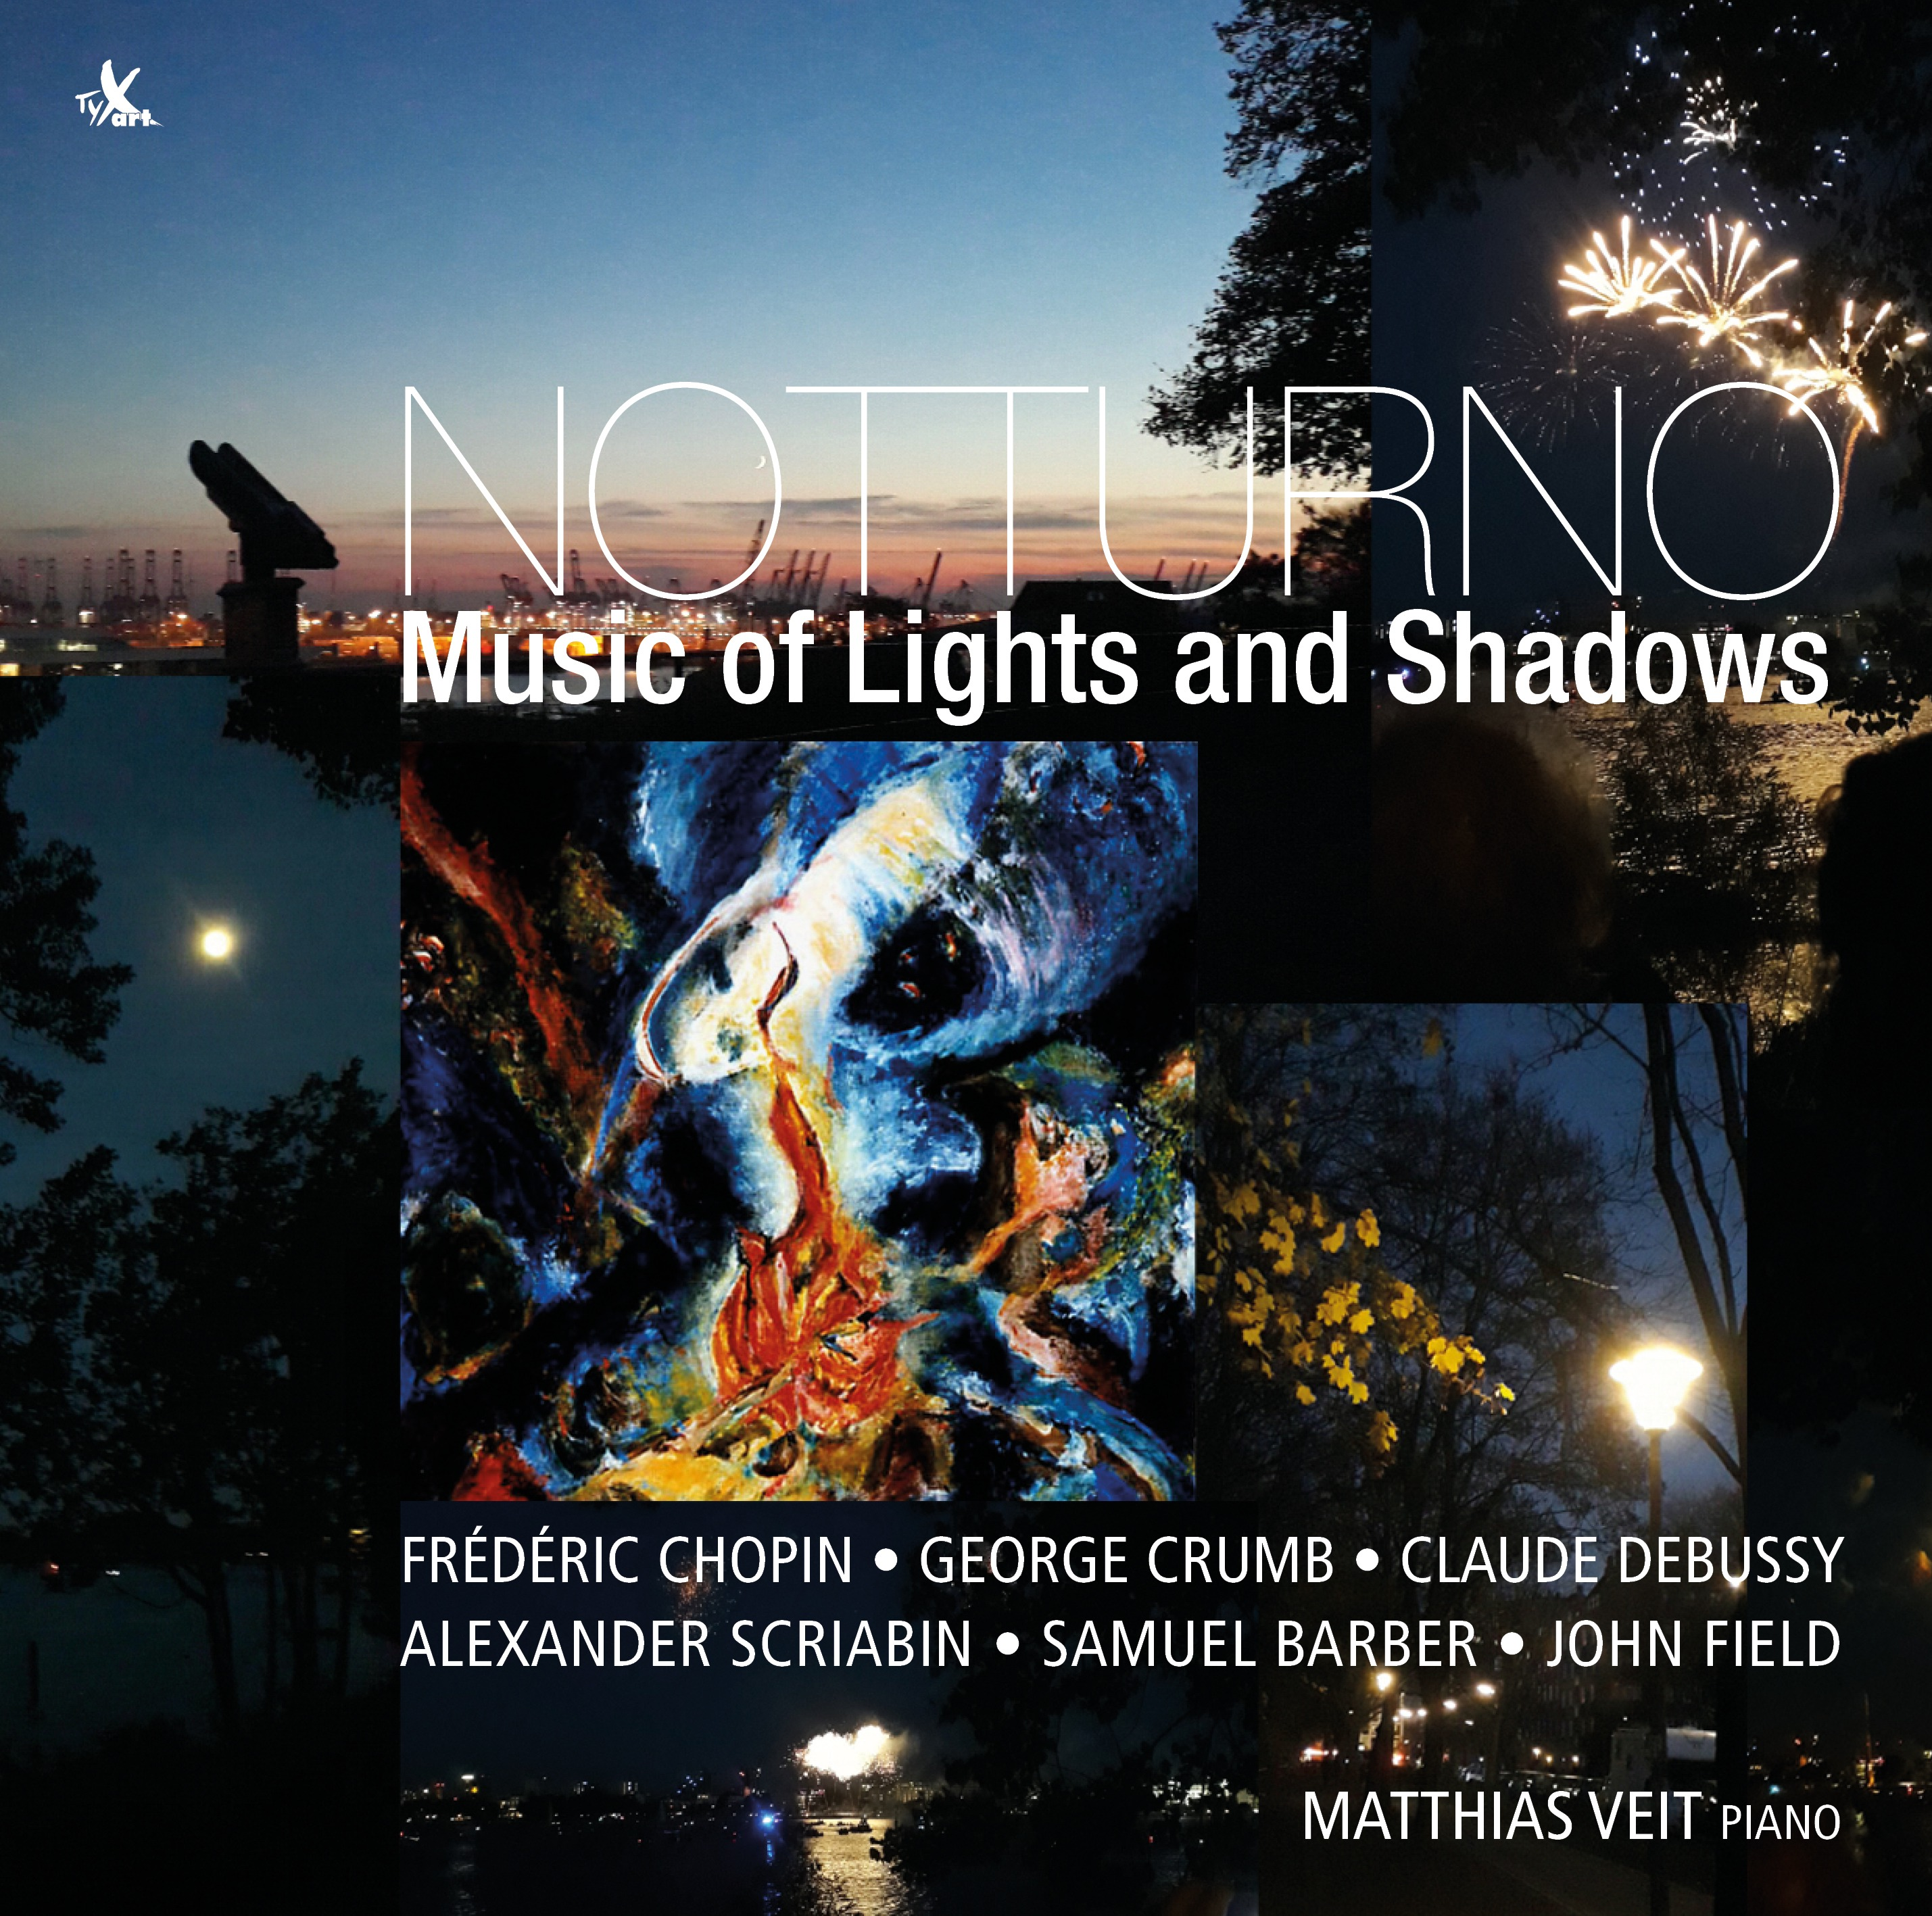 Notturno - Music of Lights and Shadows